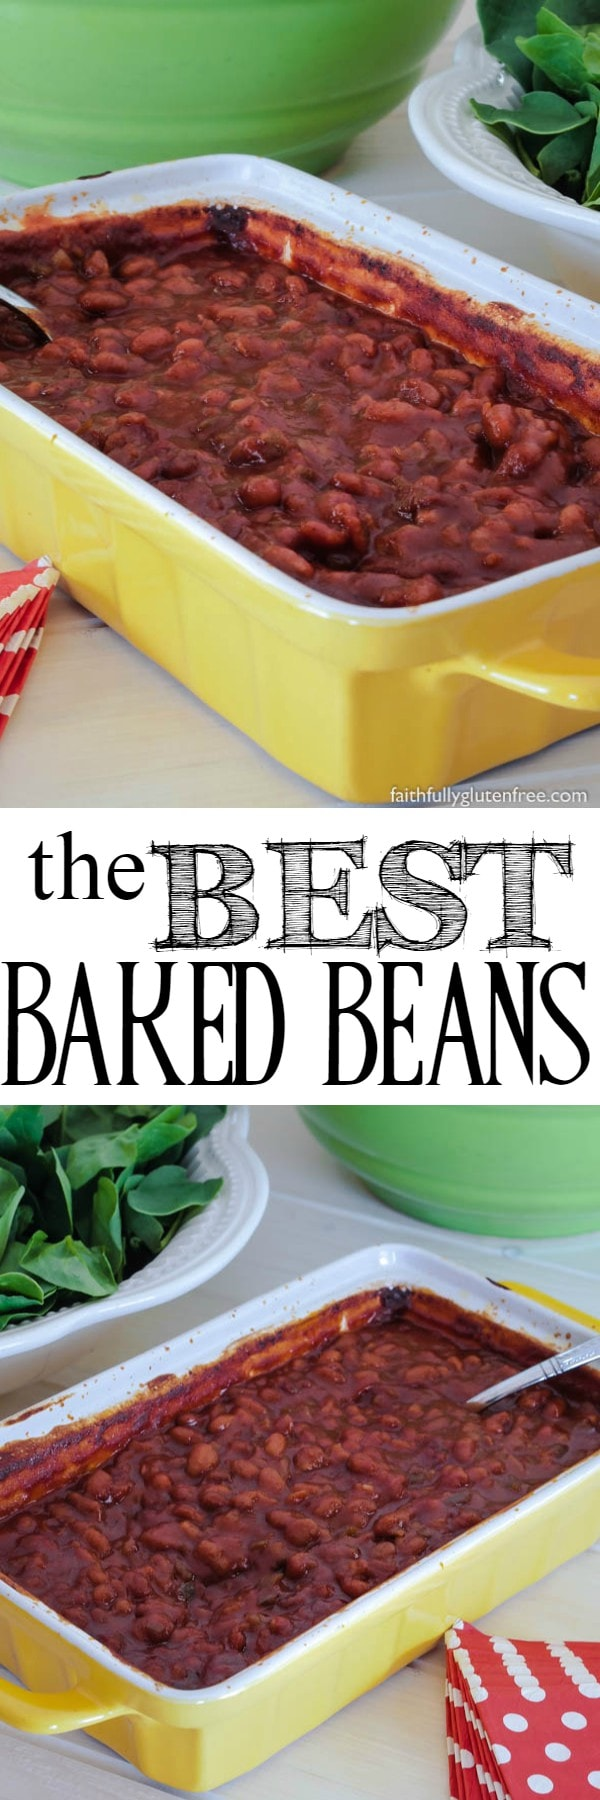 Making the Best Baked Beans is easy when you use store-bought beans as the base, and then jazz them up to customize them.